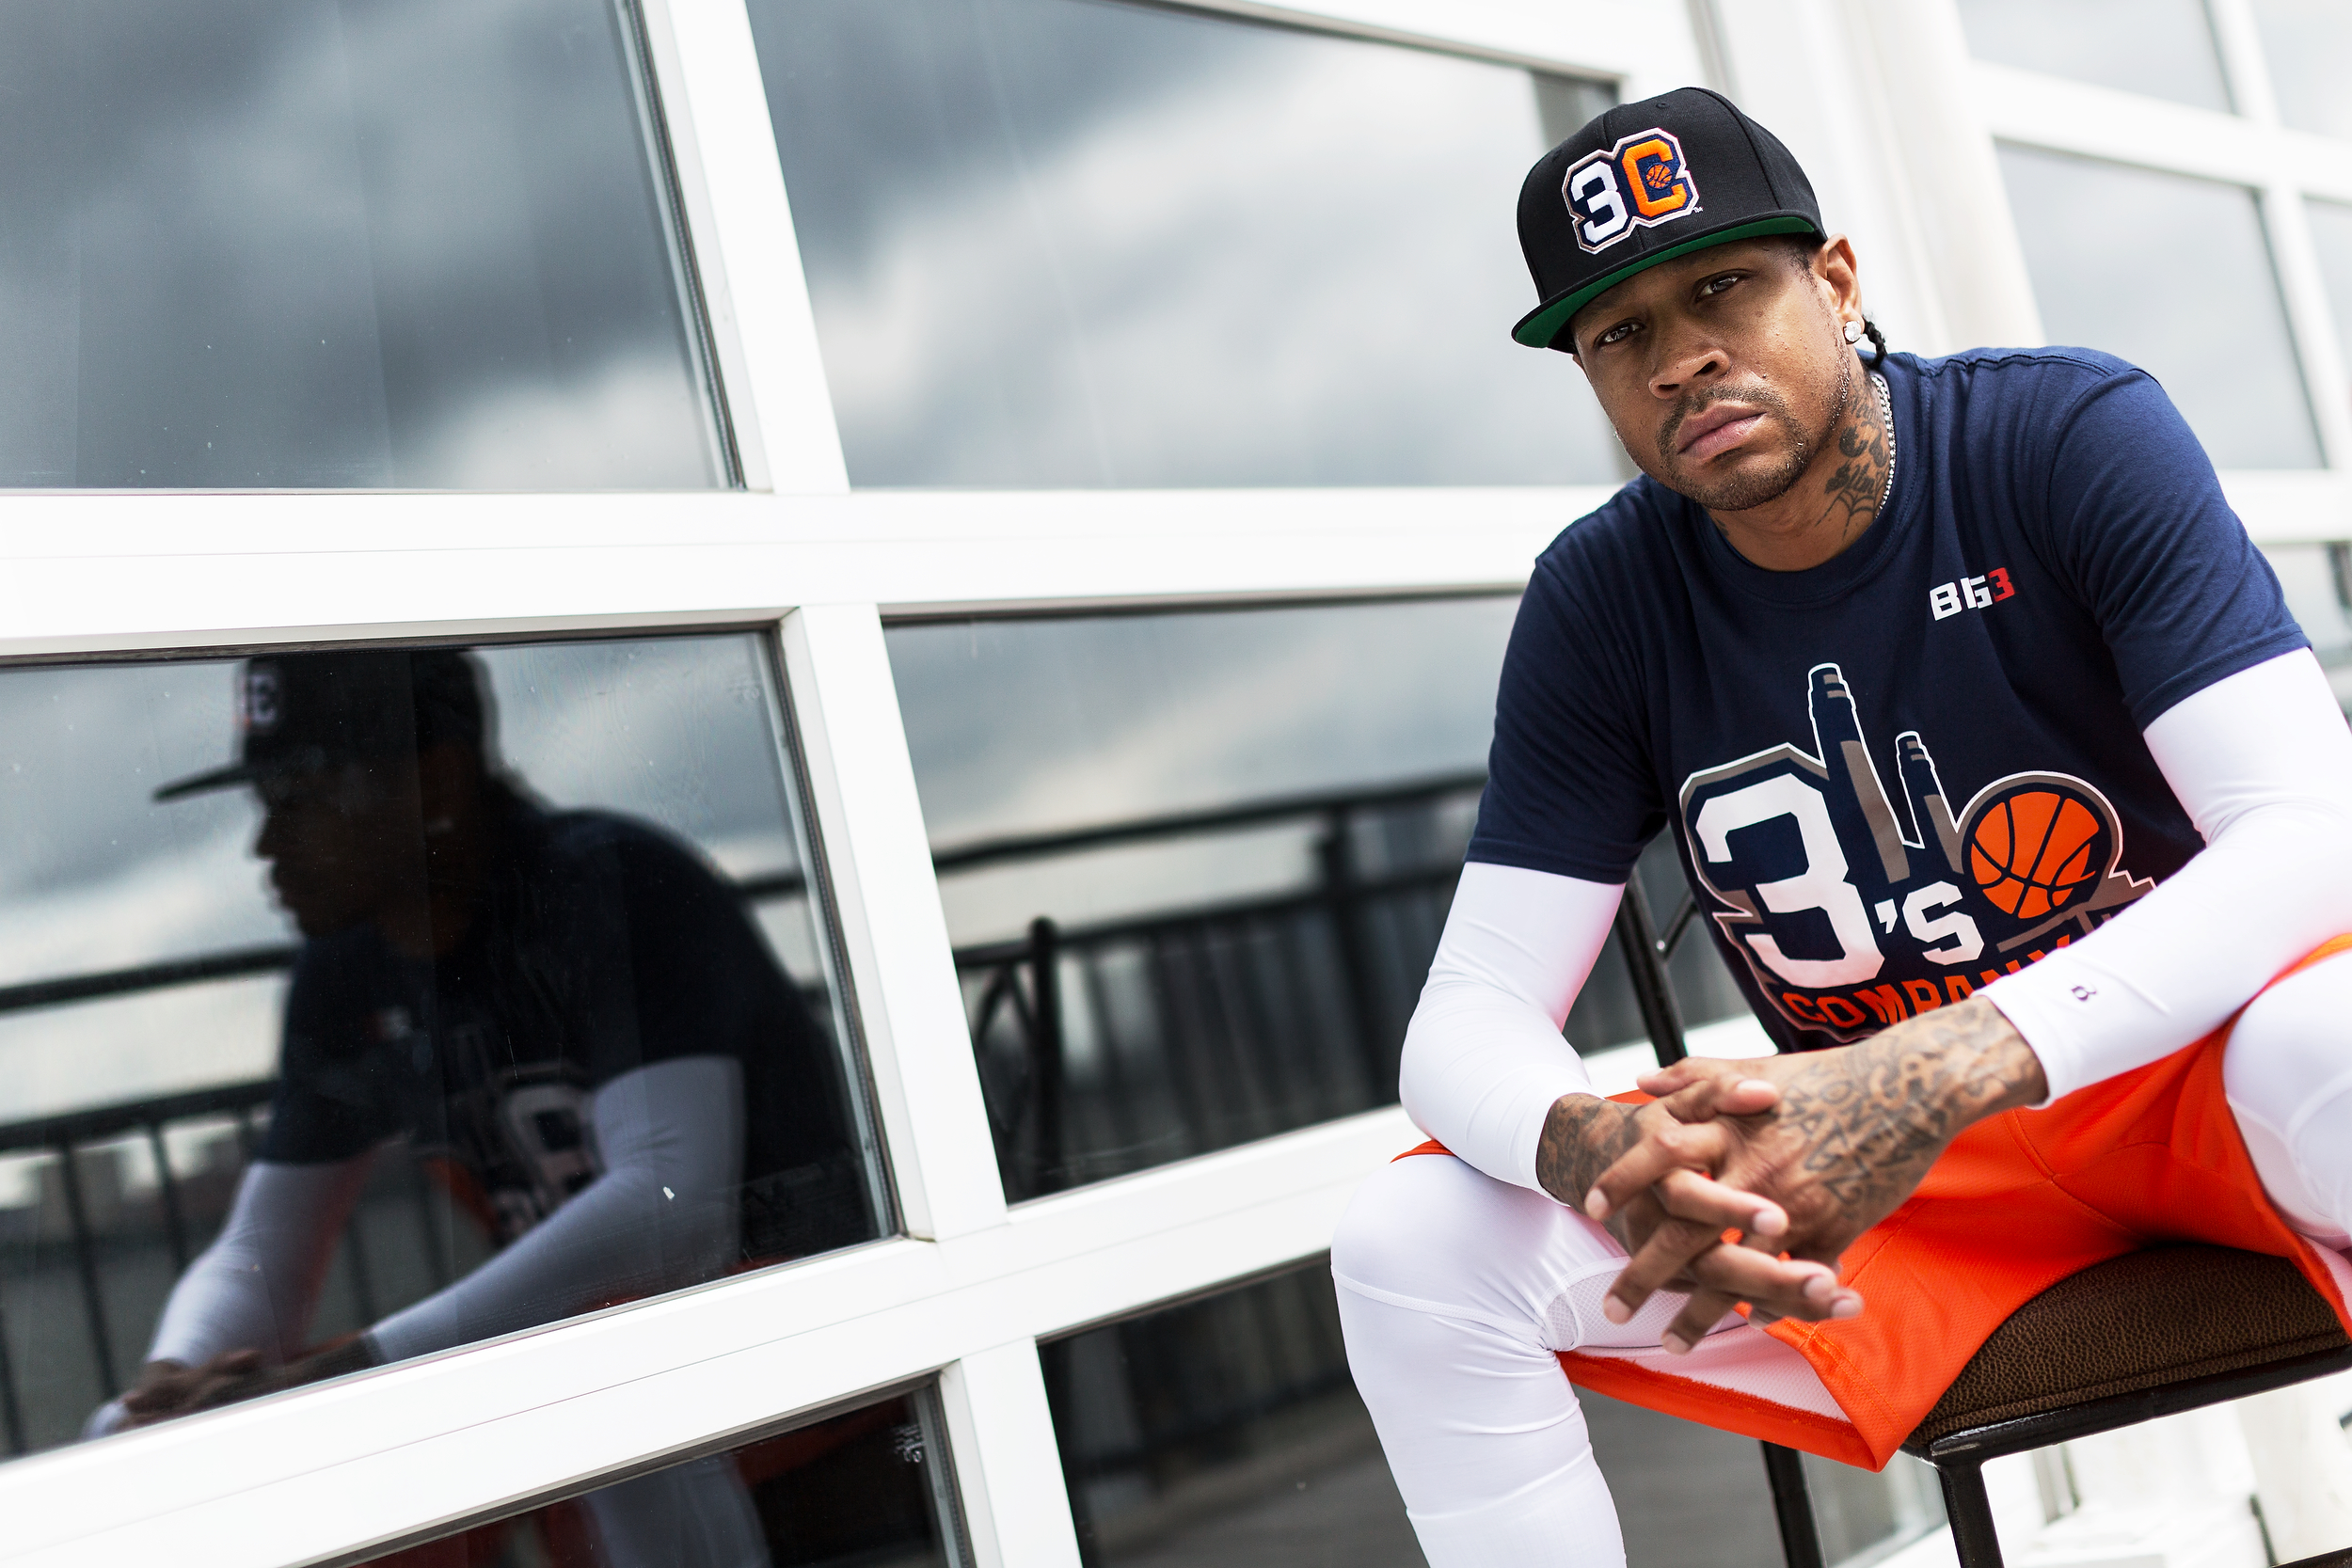 Former NBA player Allen Iverson is photographed at the BIG3 media day at Chelsea Piers on June 23, 2017 in New York, N.Y. The BIG3 is a 3-on-3 basketball league made up of many former NBA players and was started by rapper/actor Ice Cube and entertainment executive Jeff Kwatinetz. (Photo by Bryan Bennett/The Players' Tribune)